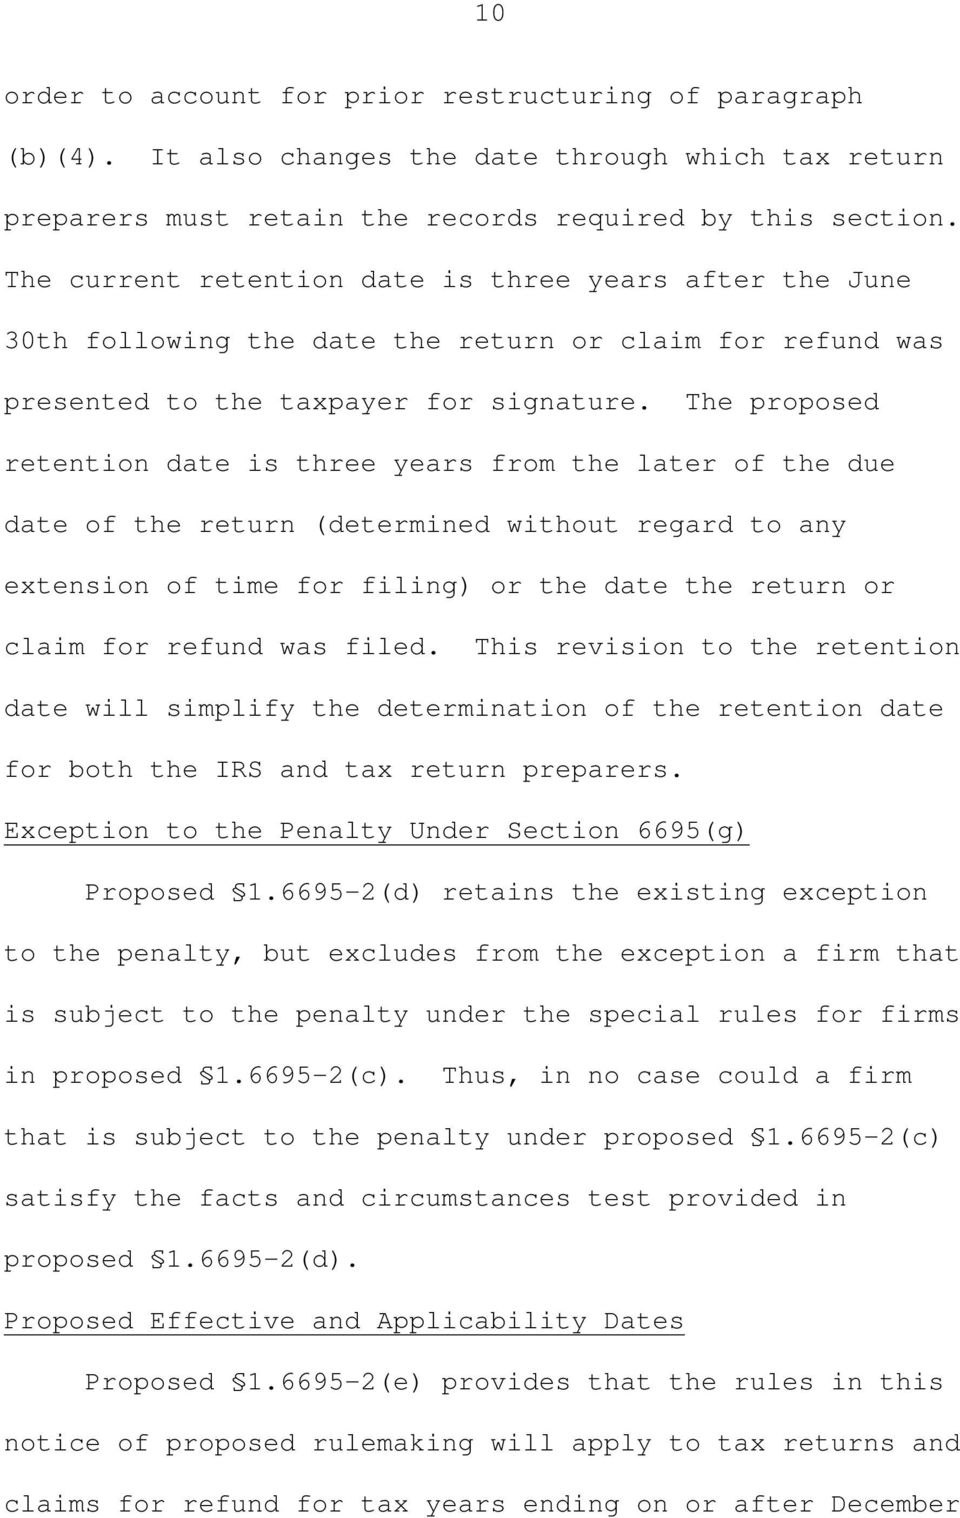 The proposed retention date is three years from the later of the due date of the return (determined without regard to any extension of time for filing) or the date the return or claim for refund was